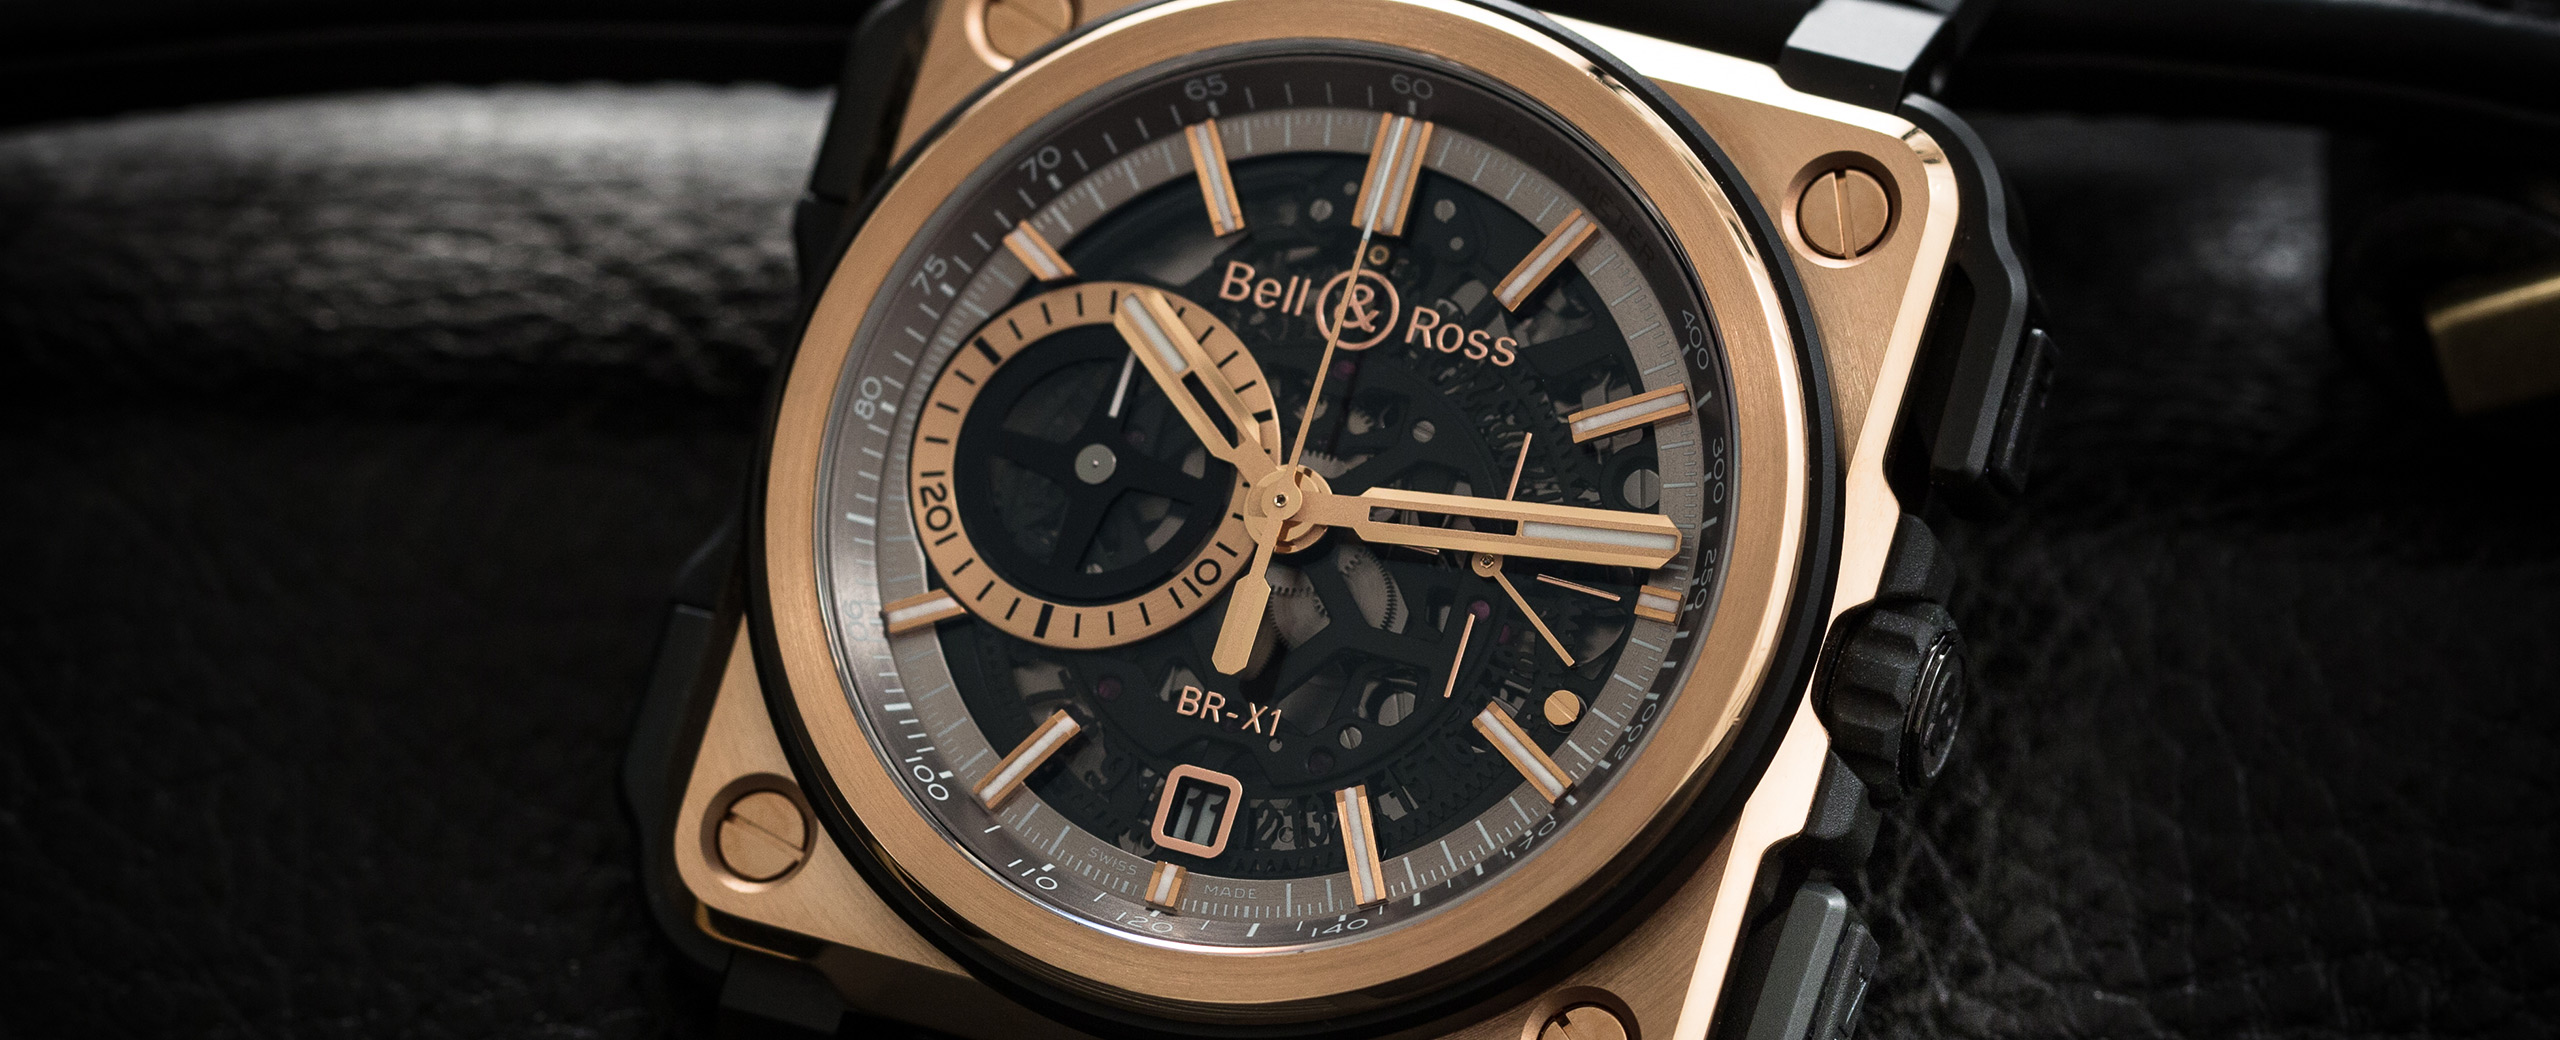 BR-X1 ROSE GOLD & CERAMIC